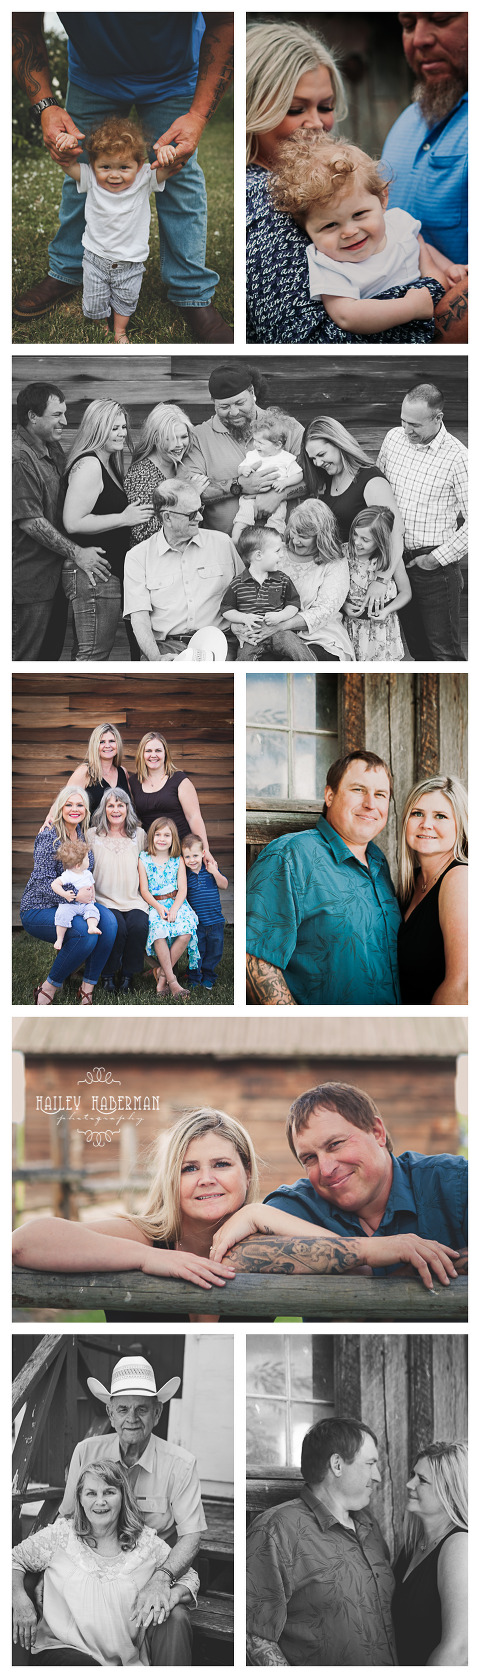 Spring Family Session with Krebs by Hailey Haberman Ellensburg Lifestyle Photographer